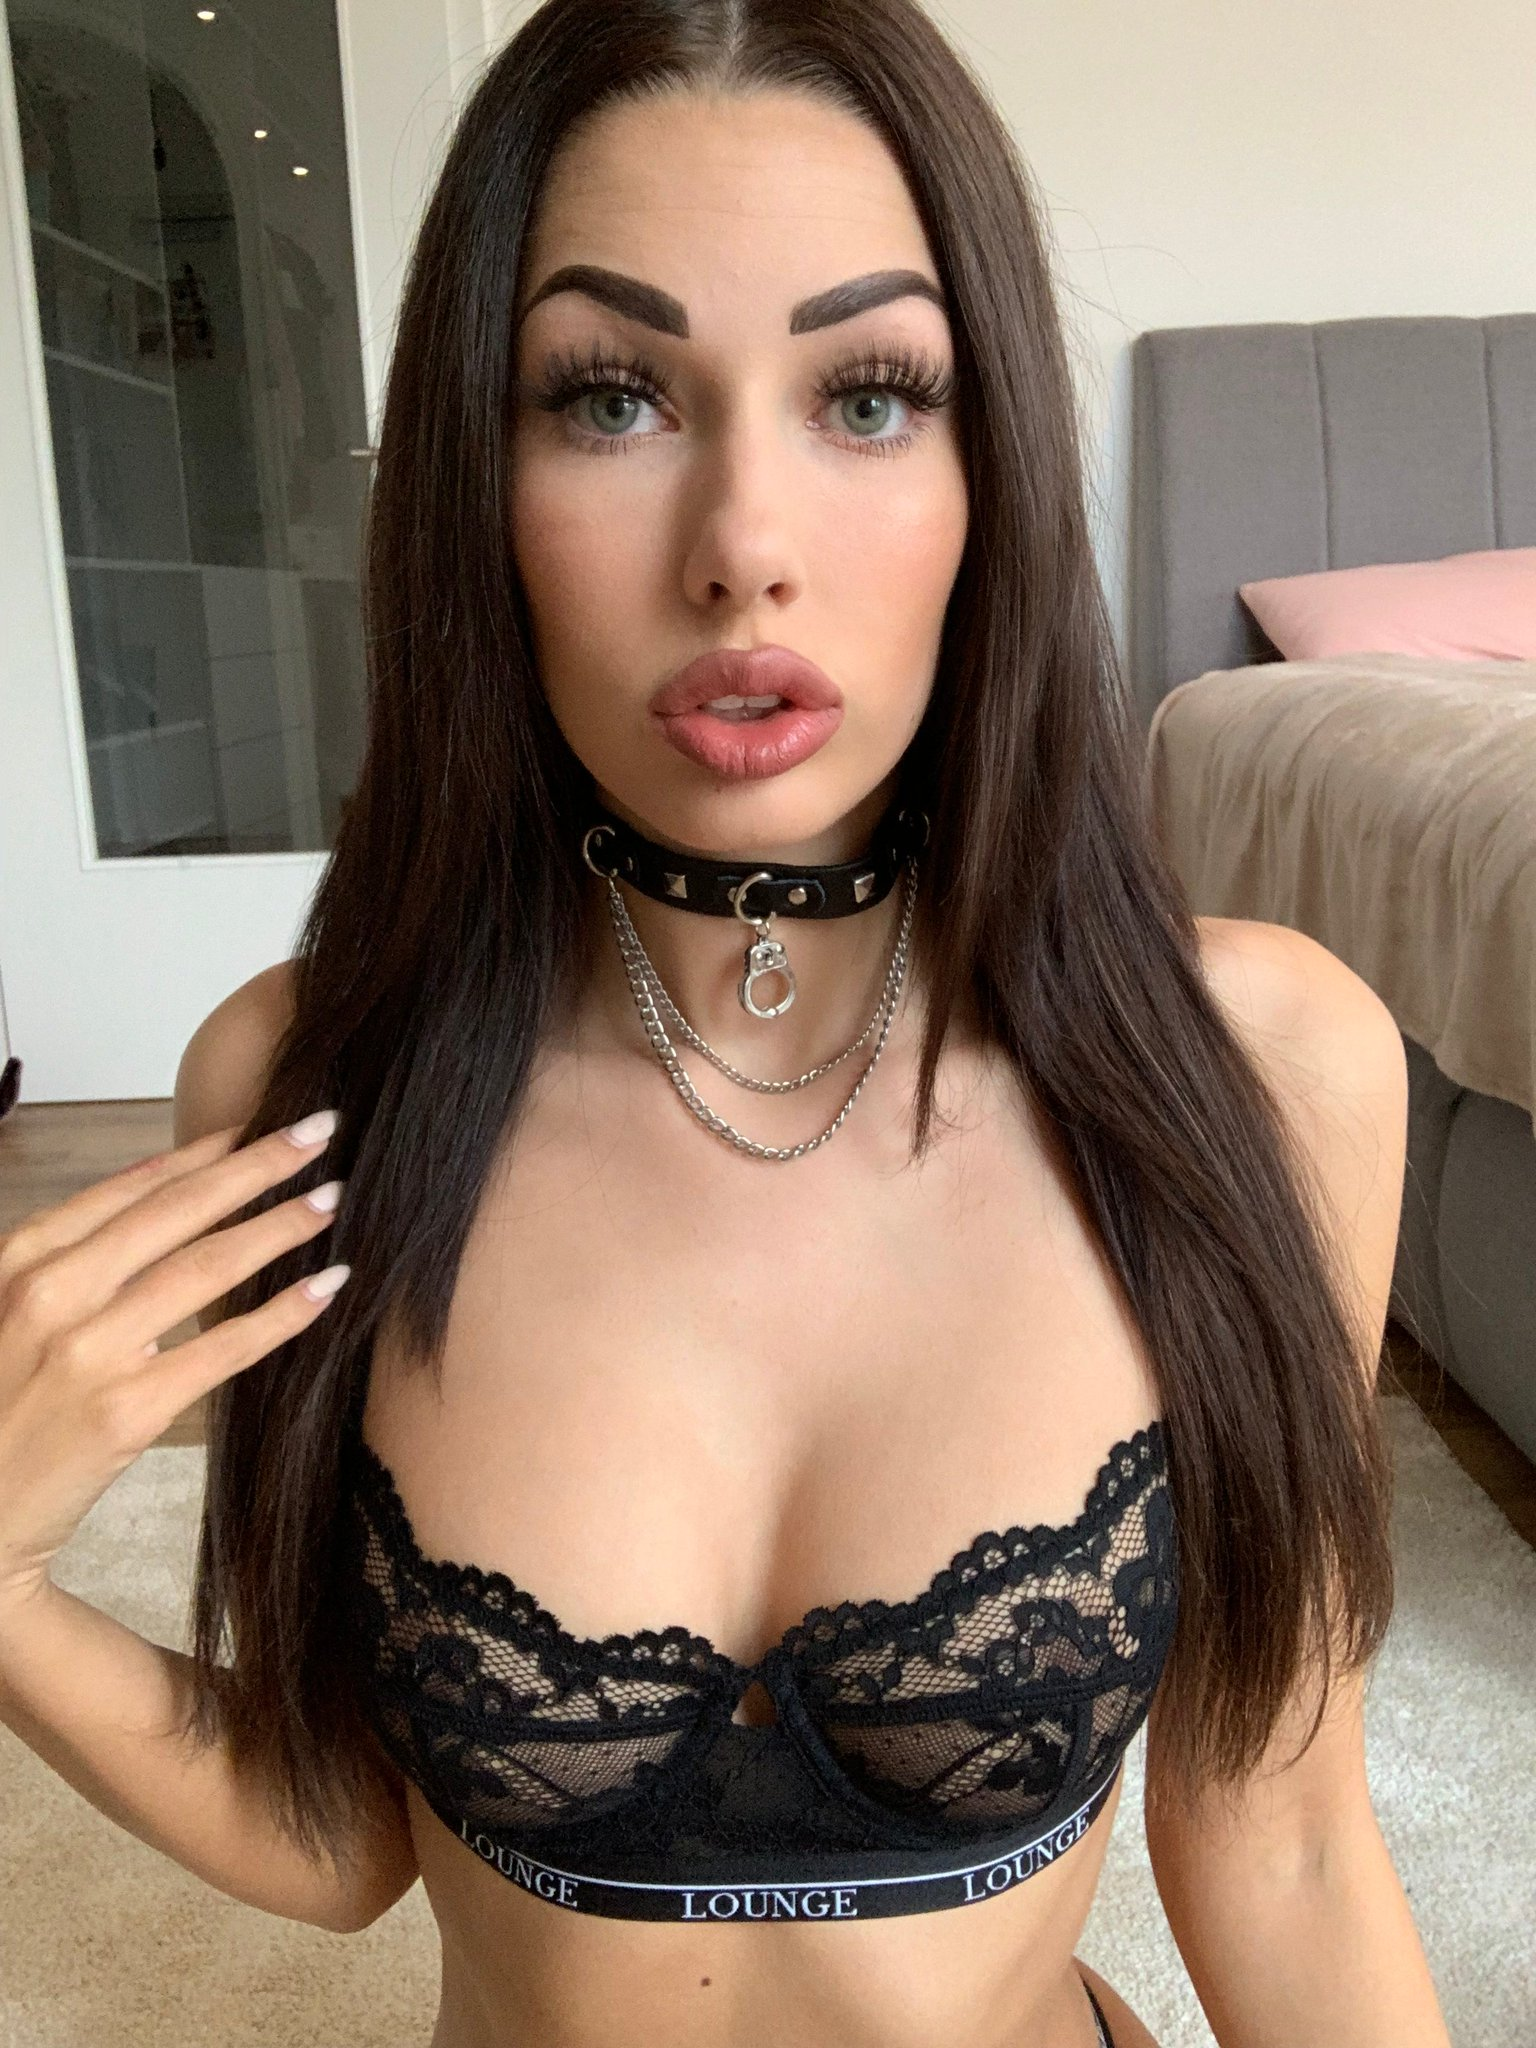 Shaiden Rogue Porn OnlyFans Leaked Nudes 133